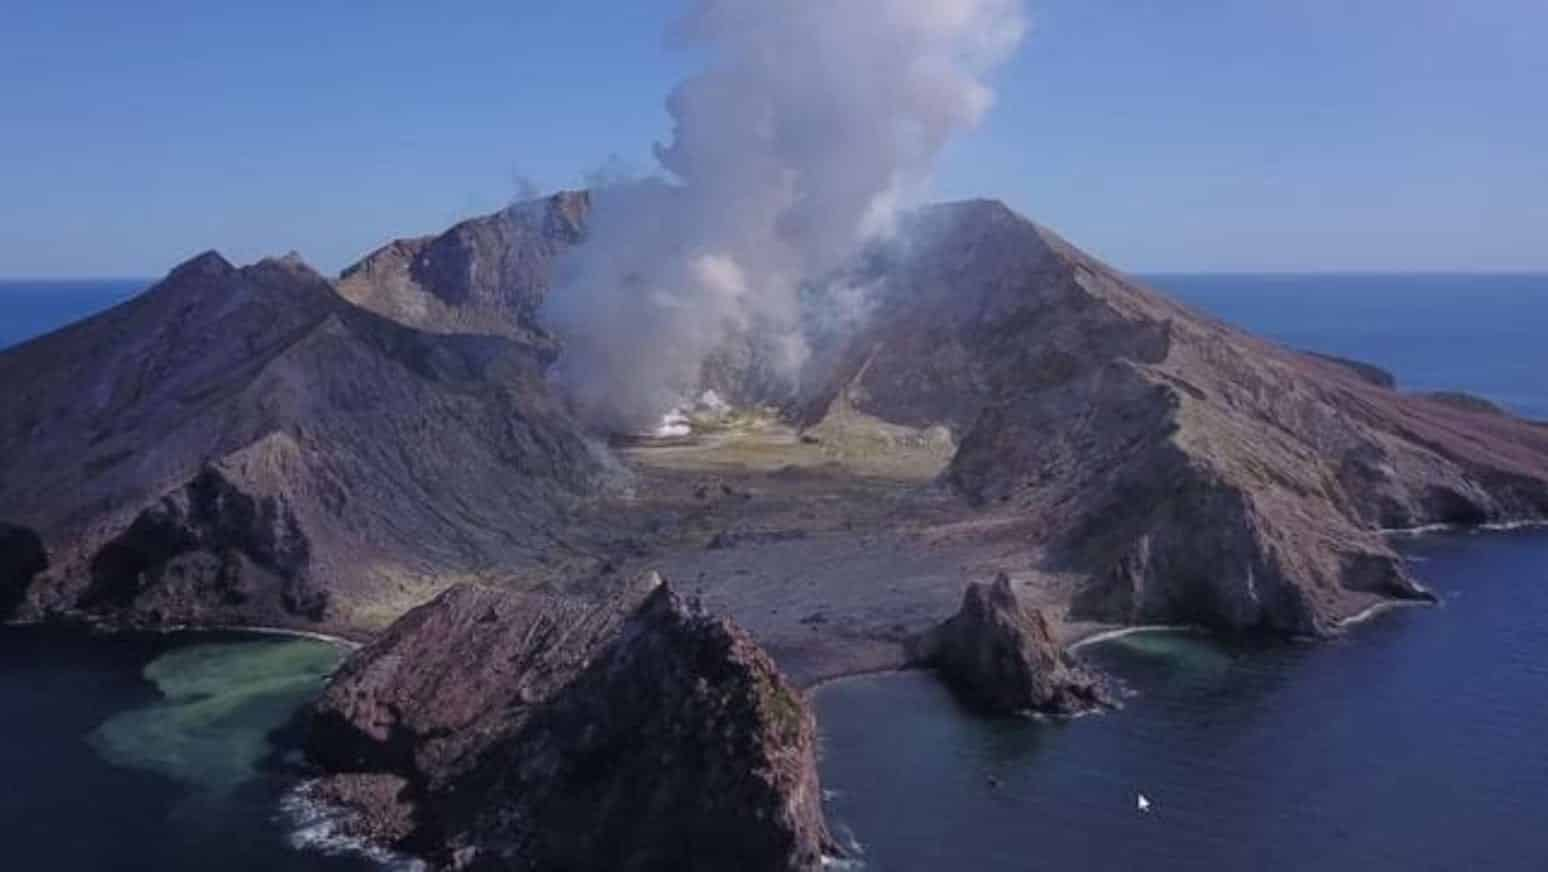 Drone photos show aftermath of White Island volcano eruption